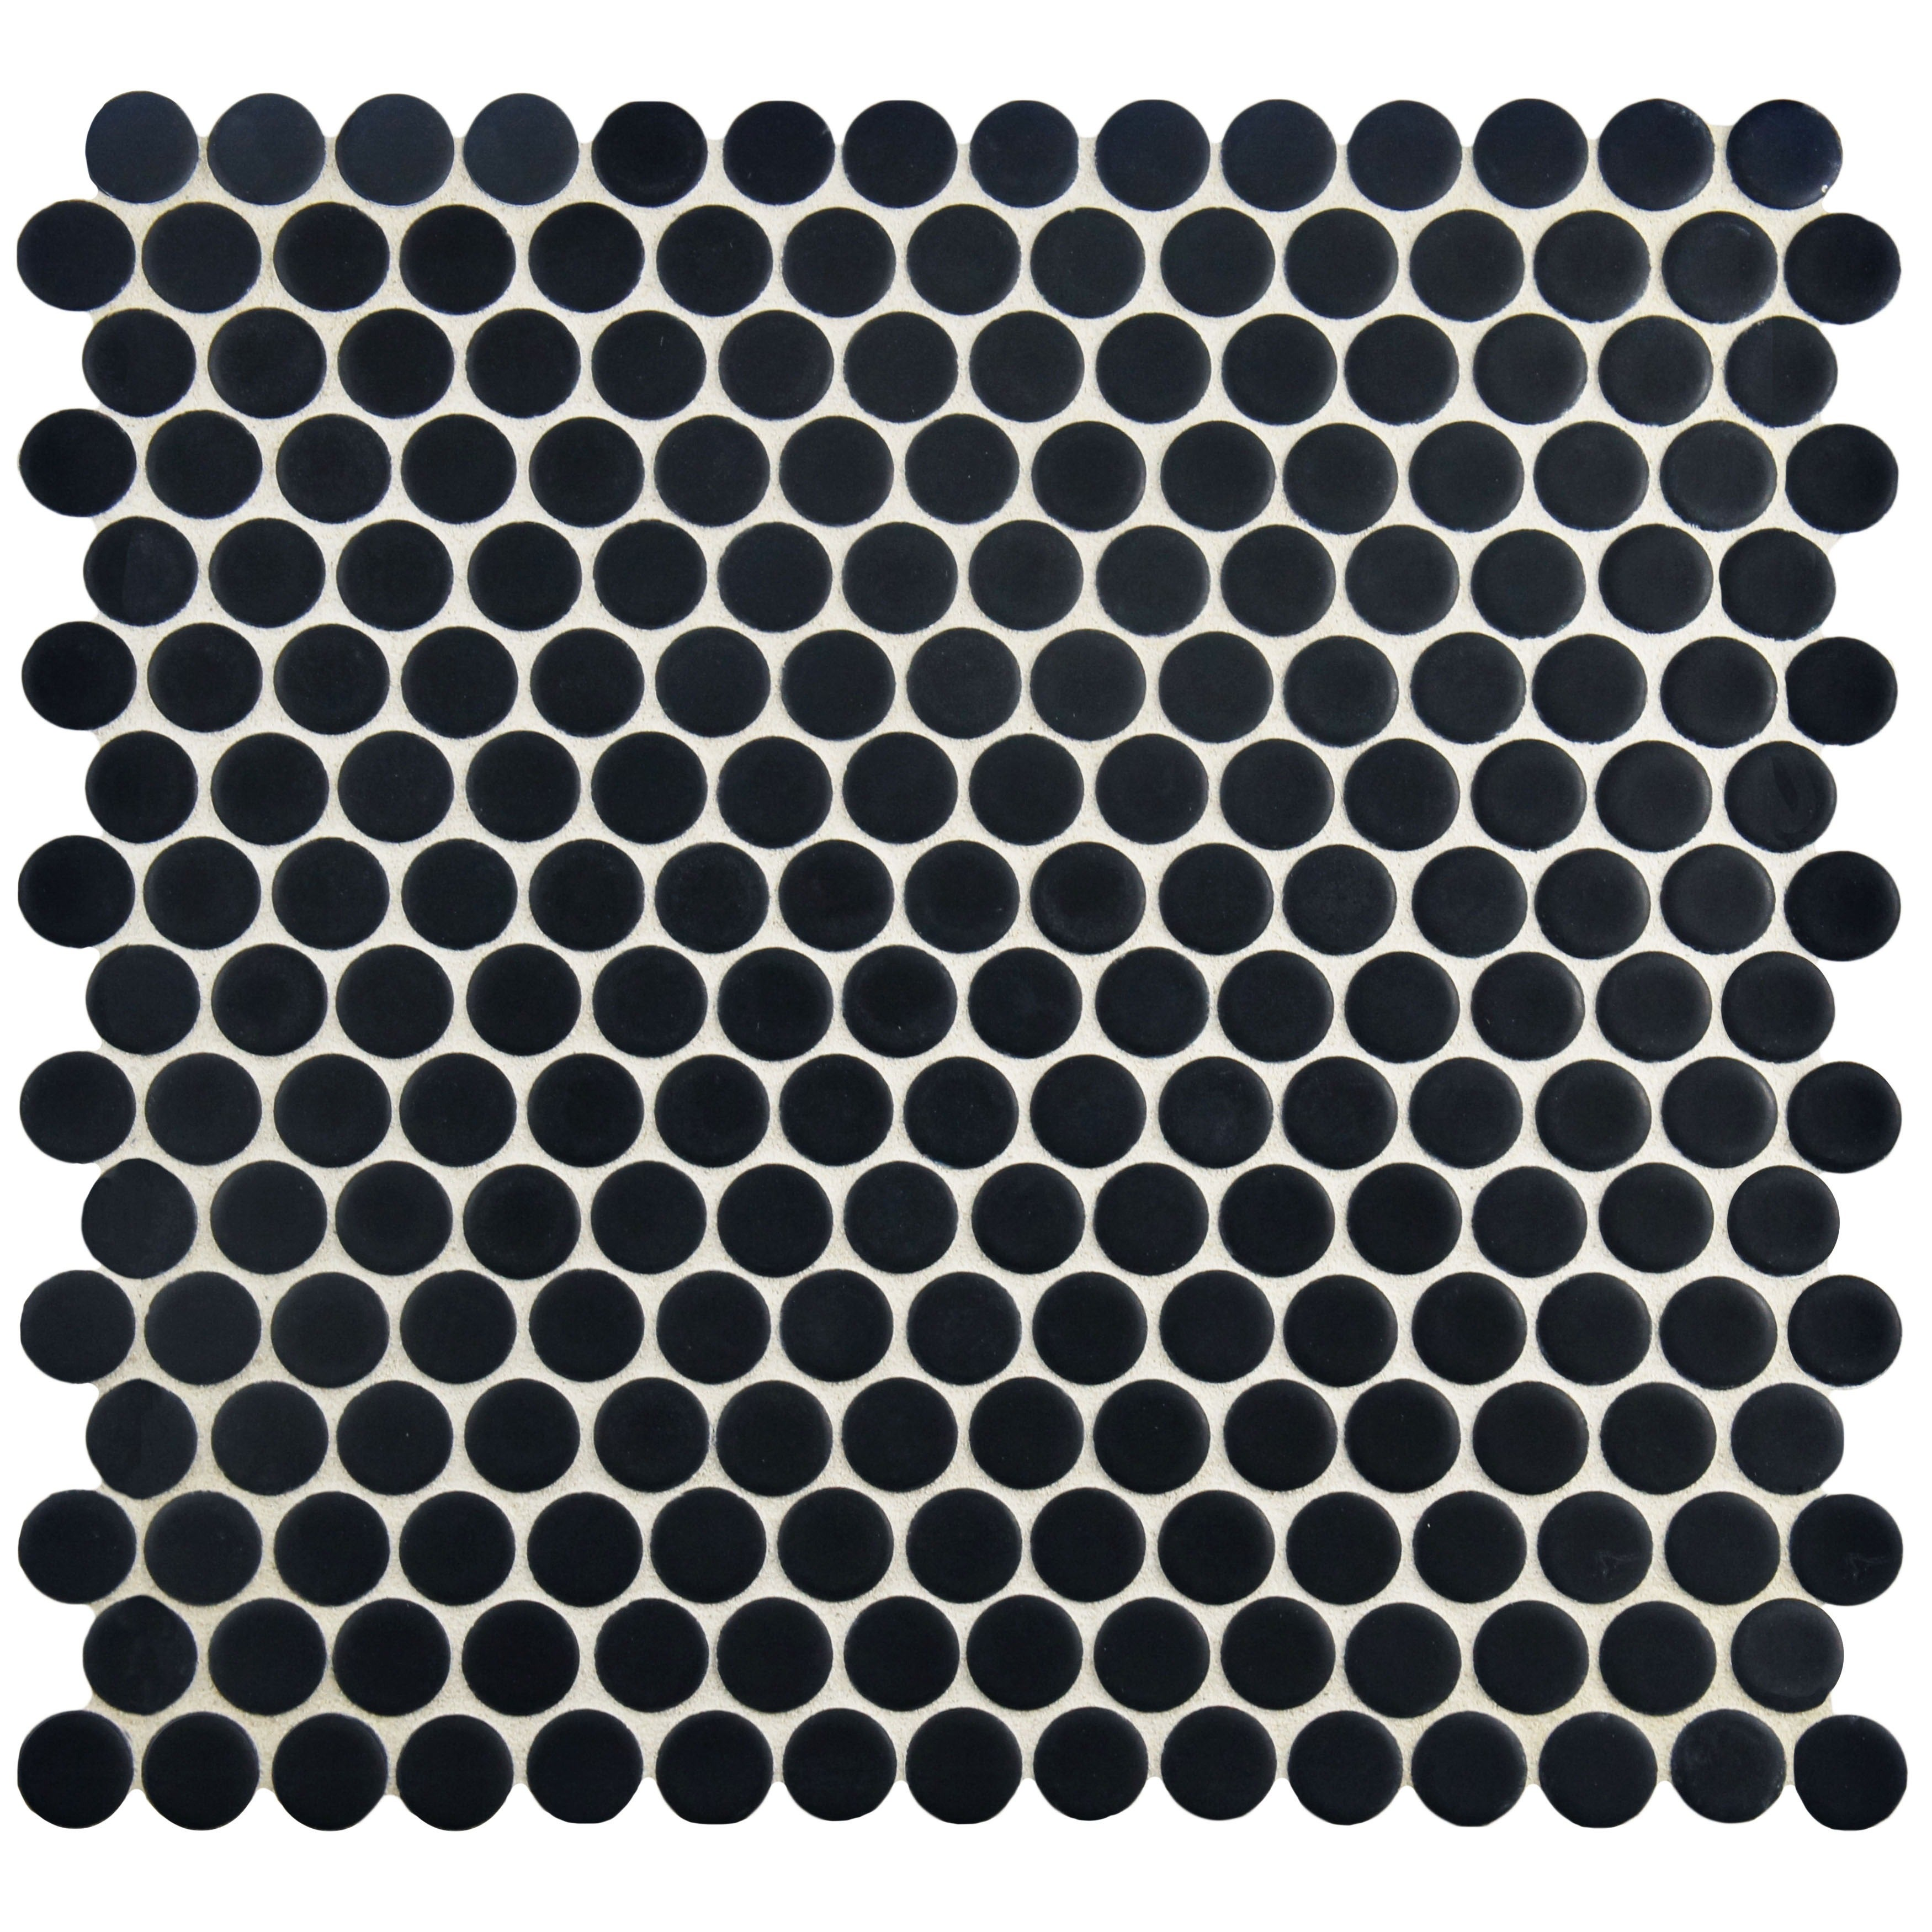 Somertile 12x12 625 Inch Penny Glossy Black Porcelain Mosaic Floor And Wall Tile 10 Tiles 2 Sqft Free Shipping On Orders Over 45